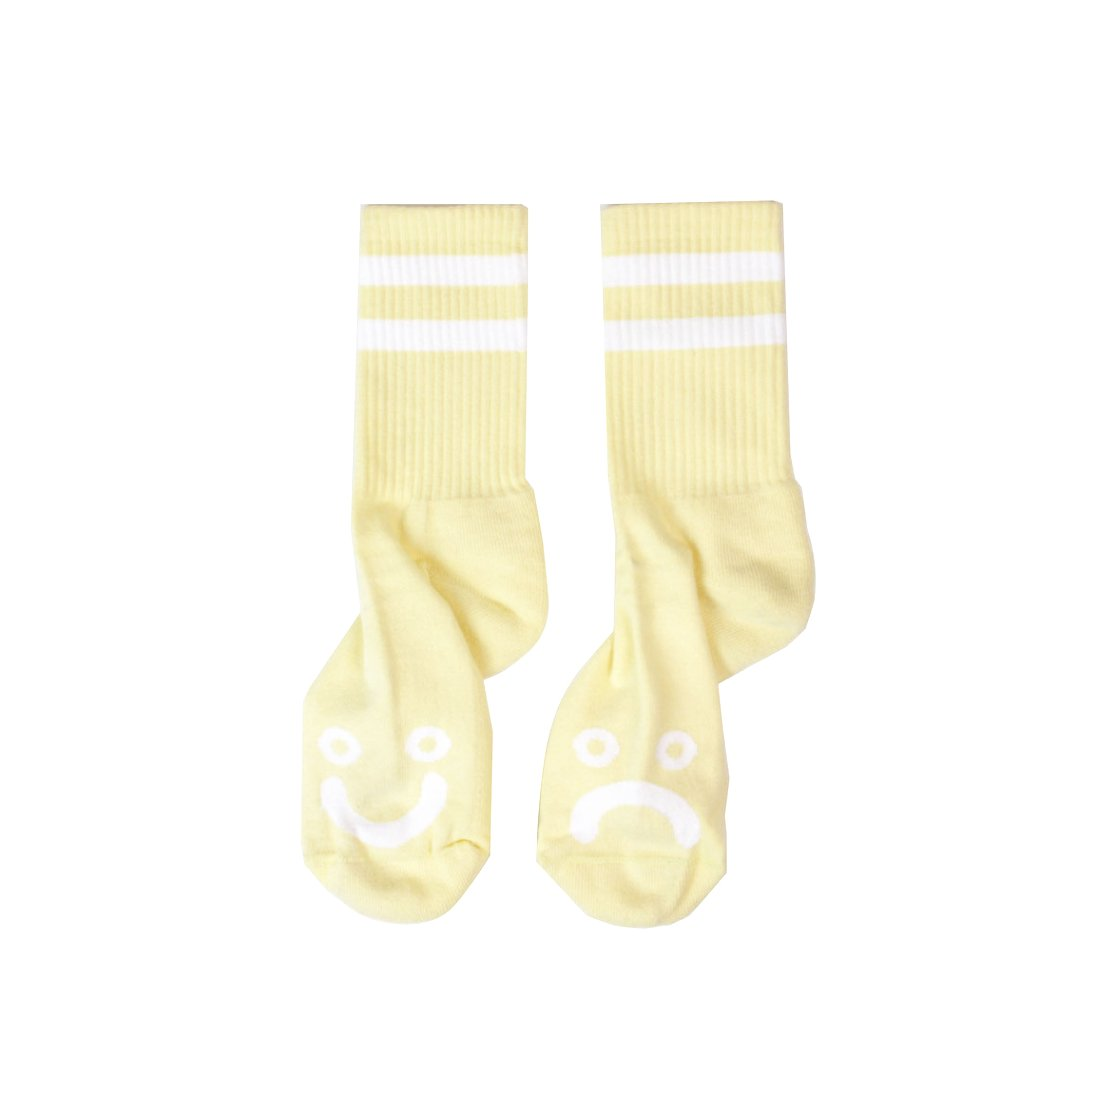 【POLAR SKATE CO.】Happy sad socks - Light Yellow